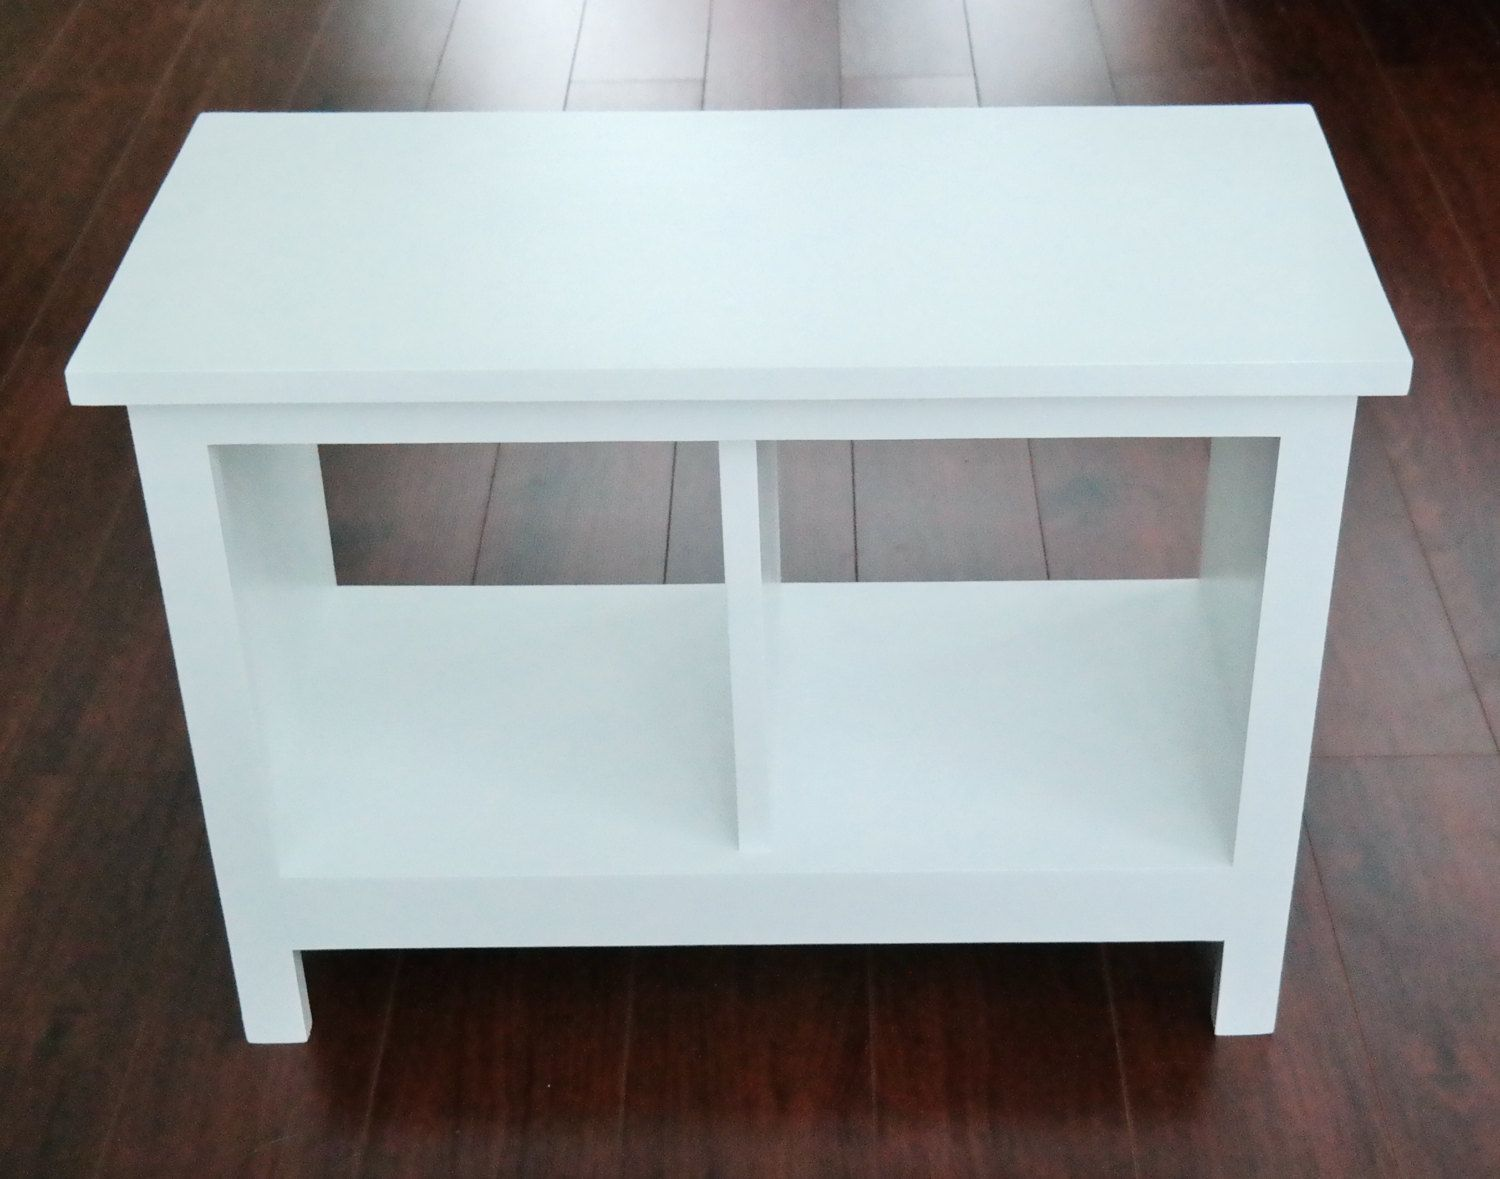 24 inch Painted Entryway Bench -Custom Furniture-Shoe Cubby -Cubby